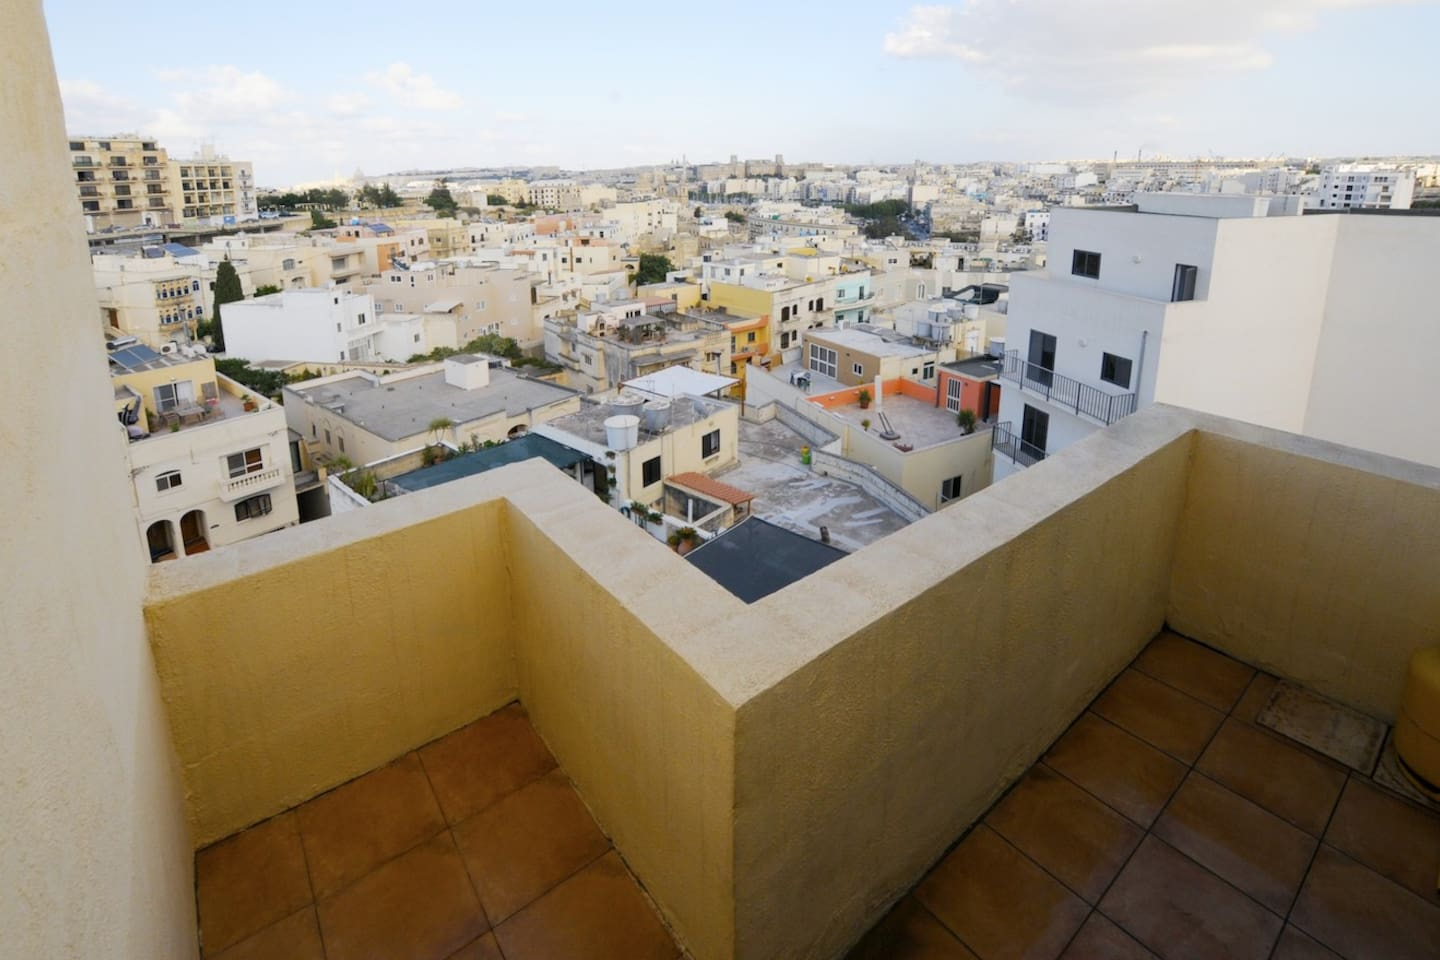 Your private balcony overlooking Msida and Valletta